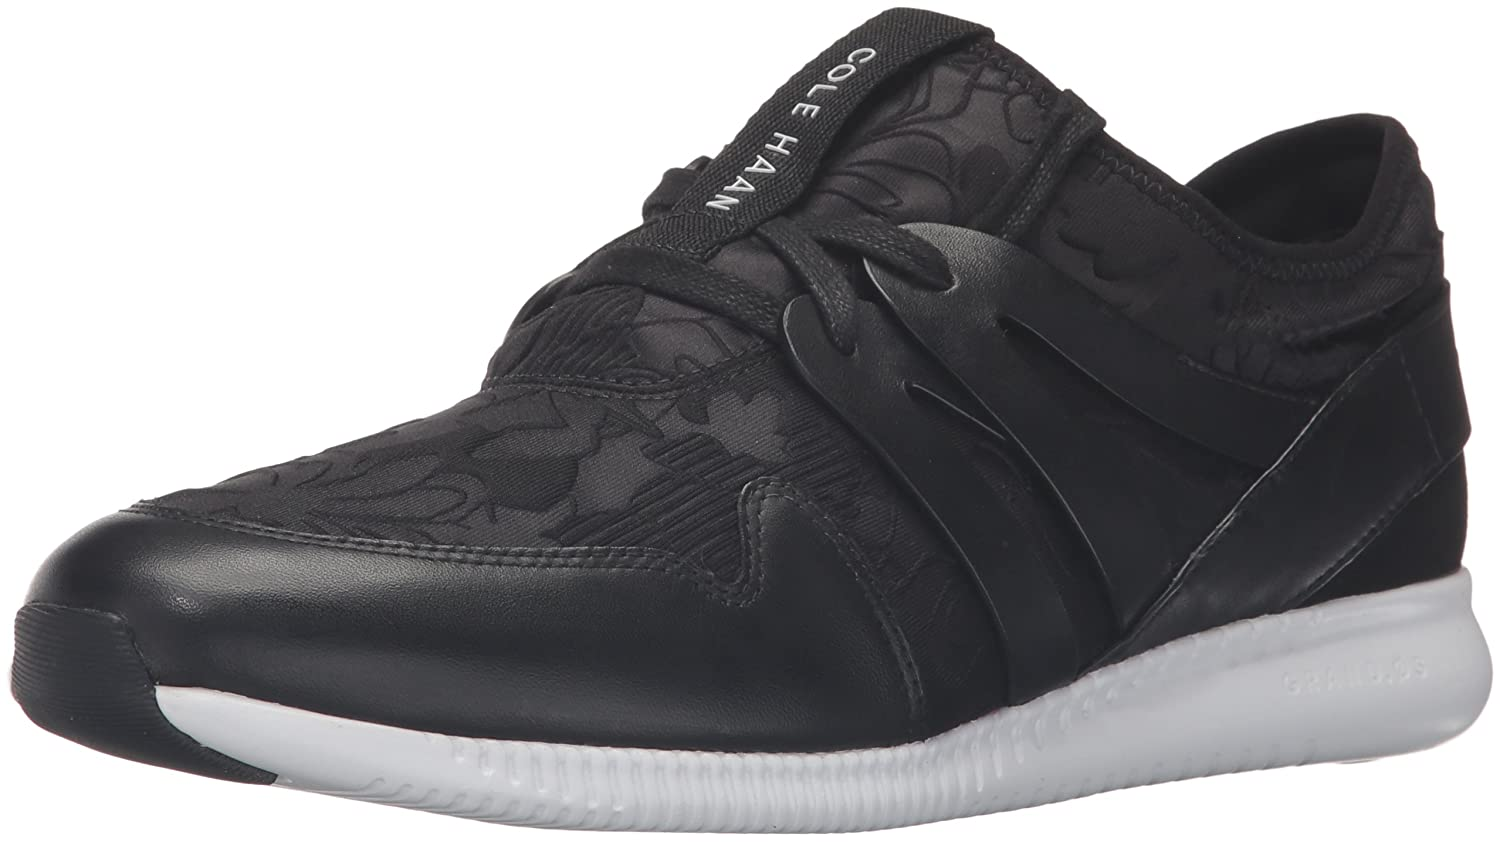 Cole Haan Women's 2.0 Studiogrand Trainer Fashion Sneaker B01HYZ97W0 7 B(M) US|Black Floral Embossed Neoprene/Leather/Optic White